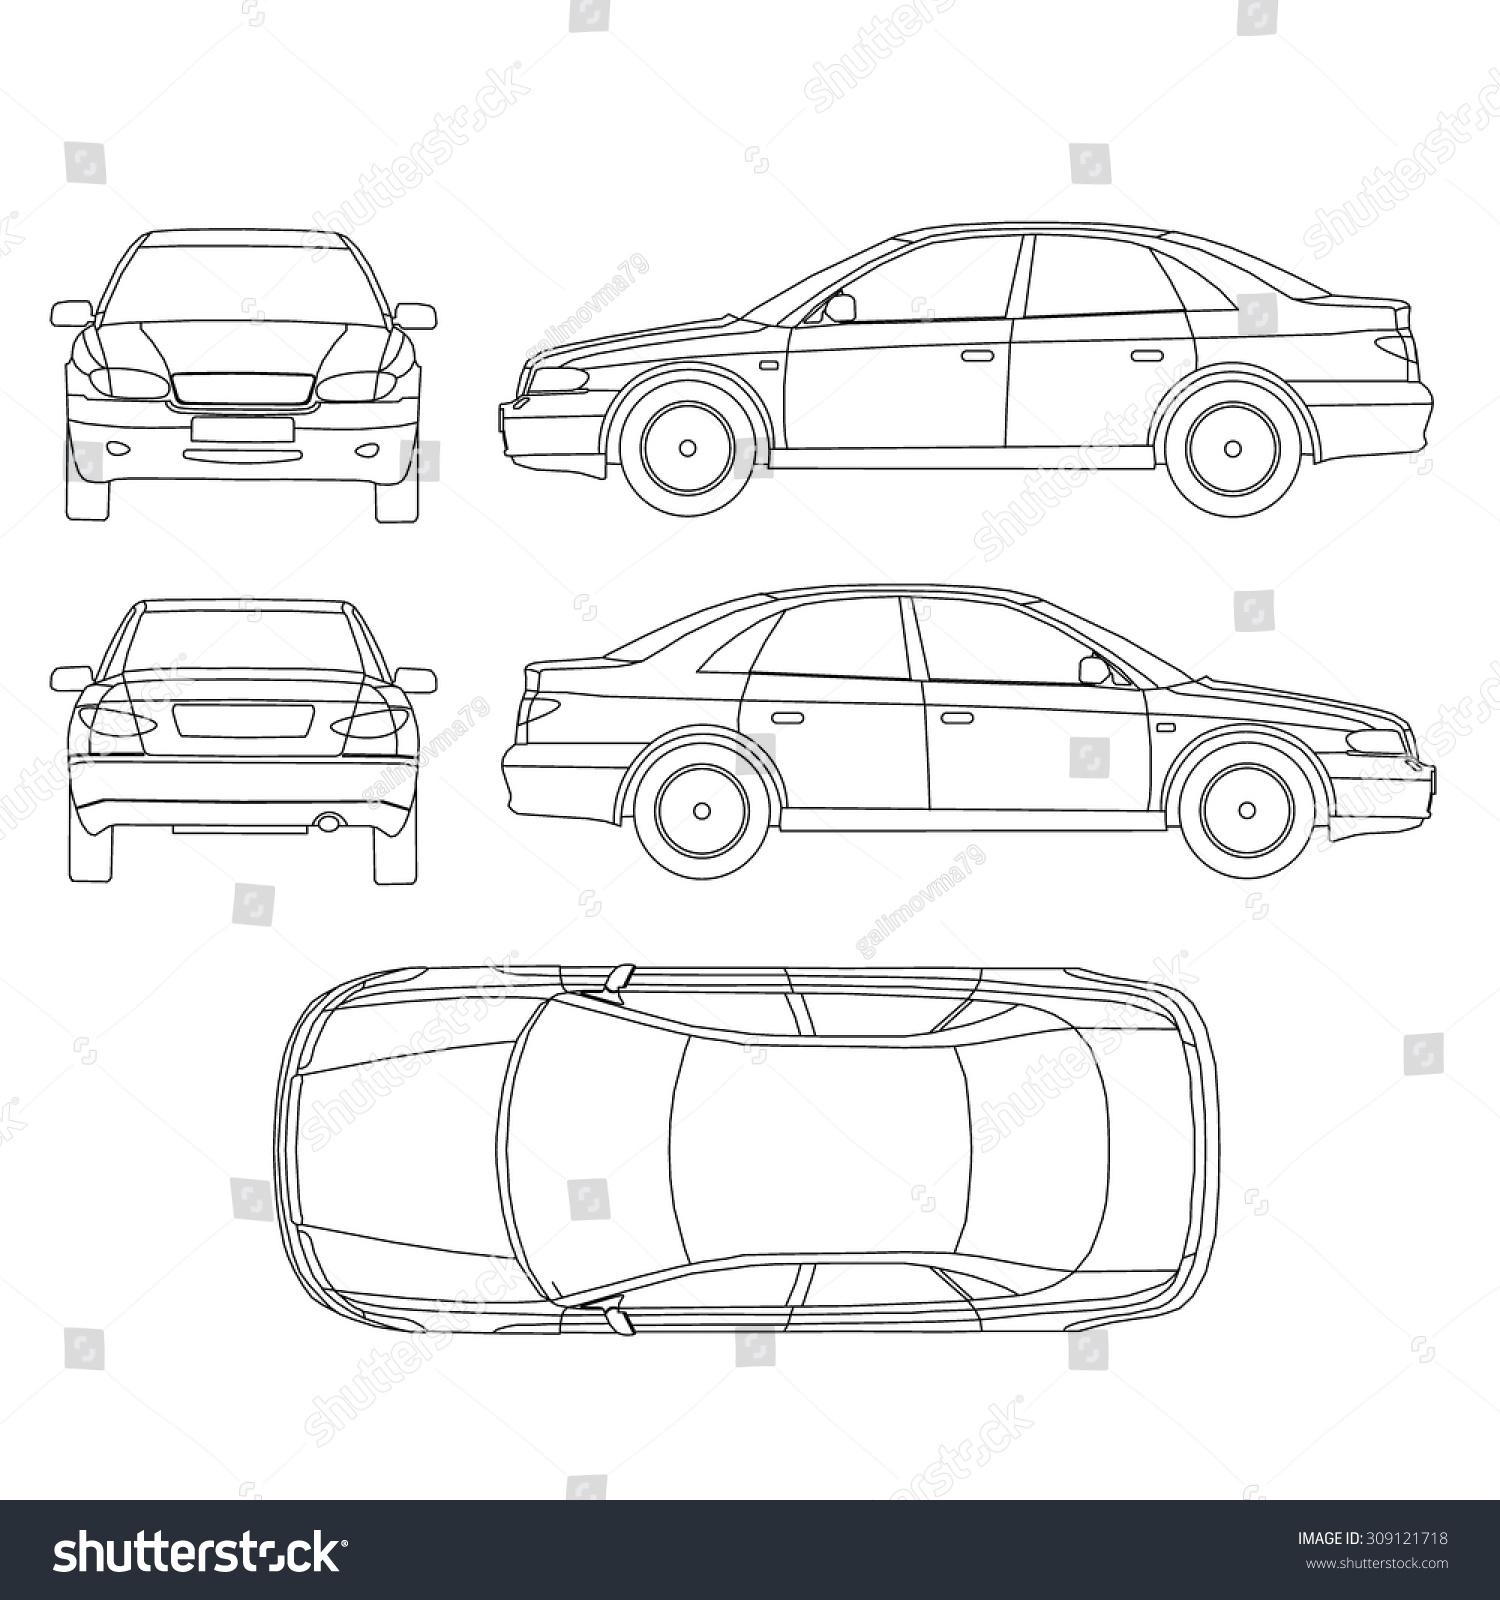 Car Line Draw Insurance Rent Damage Stock Vector HD (Royalty Free ...